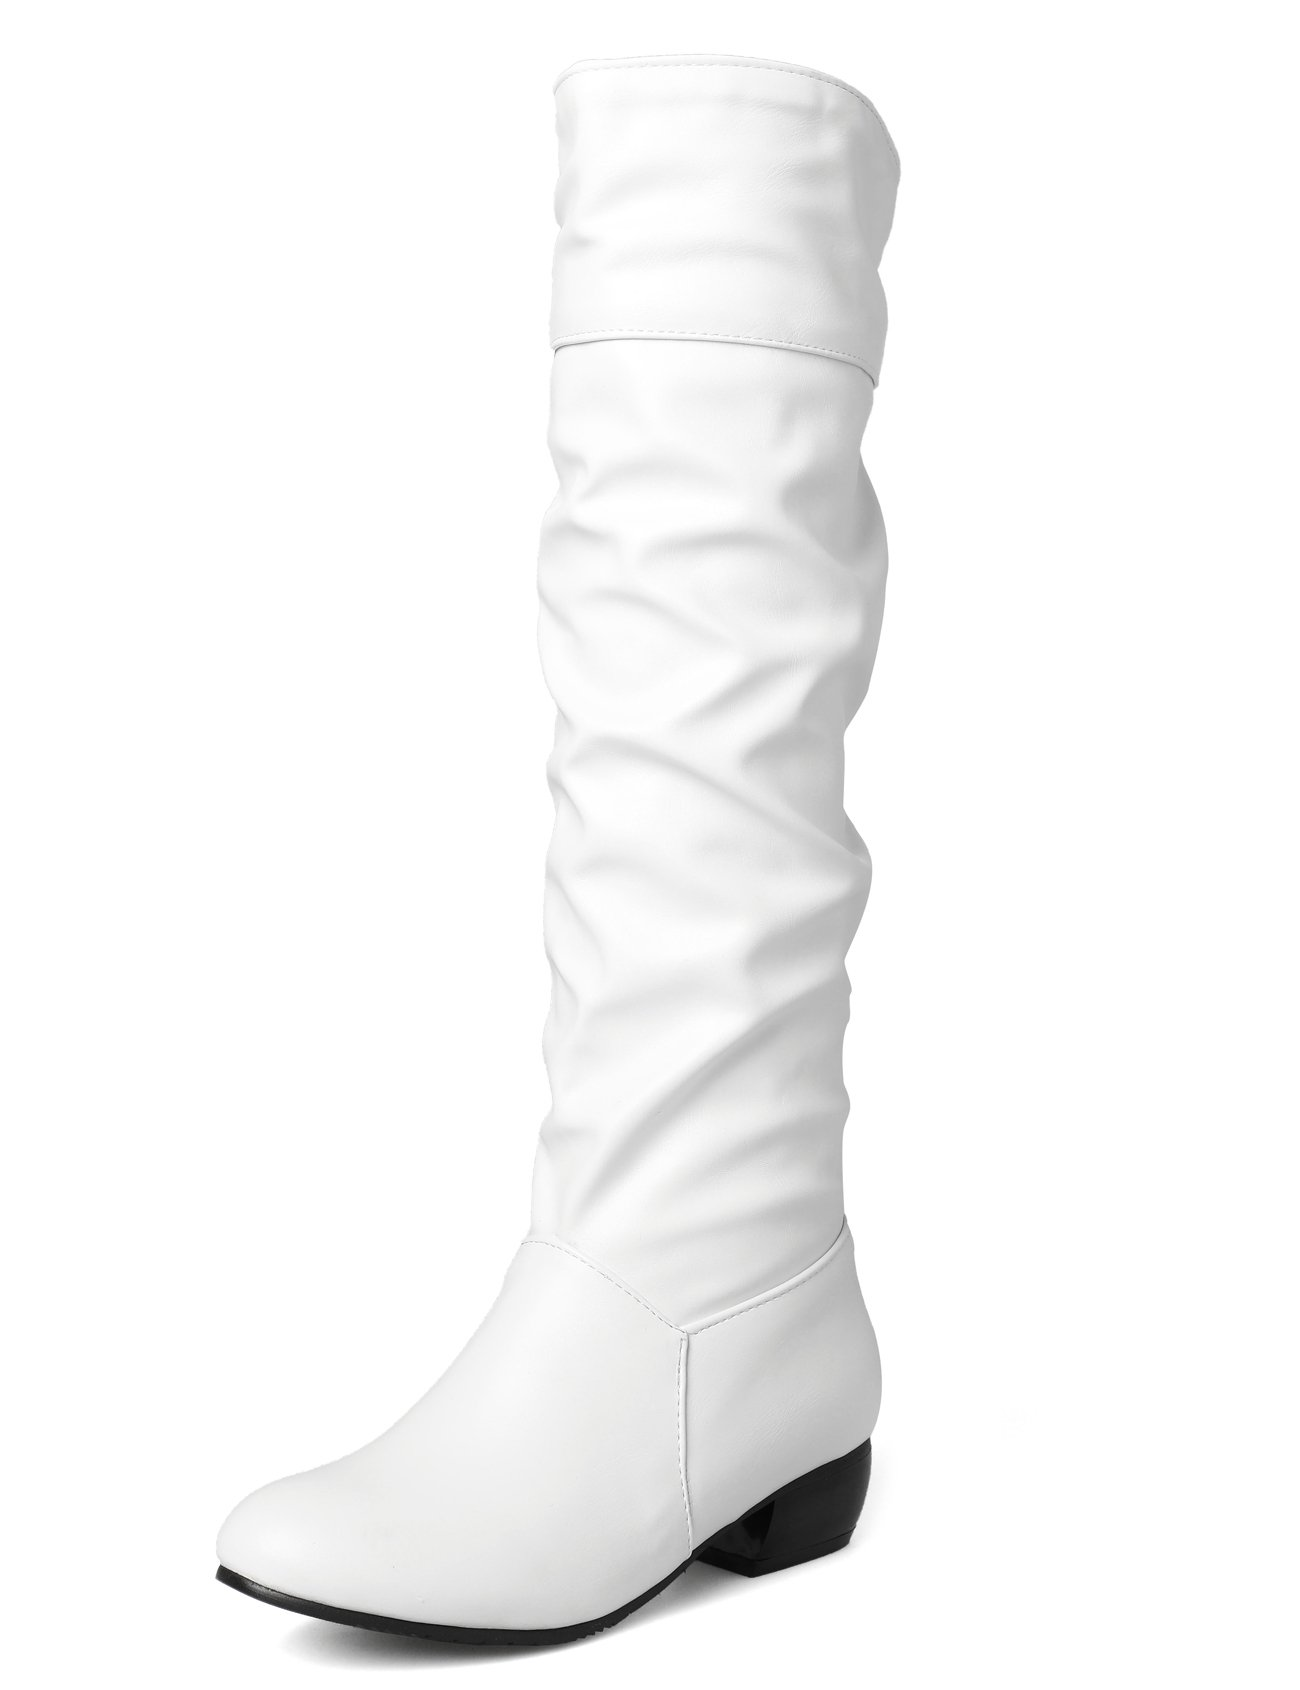 Sungtin Women's White Faux Leather Knee High Flat Slouch Boots 9 M US